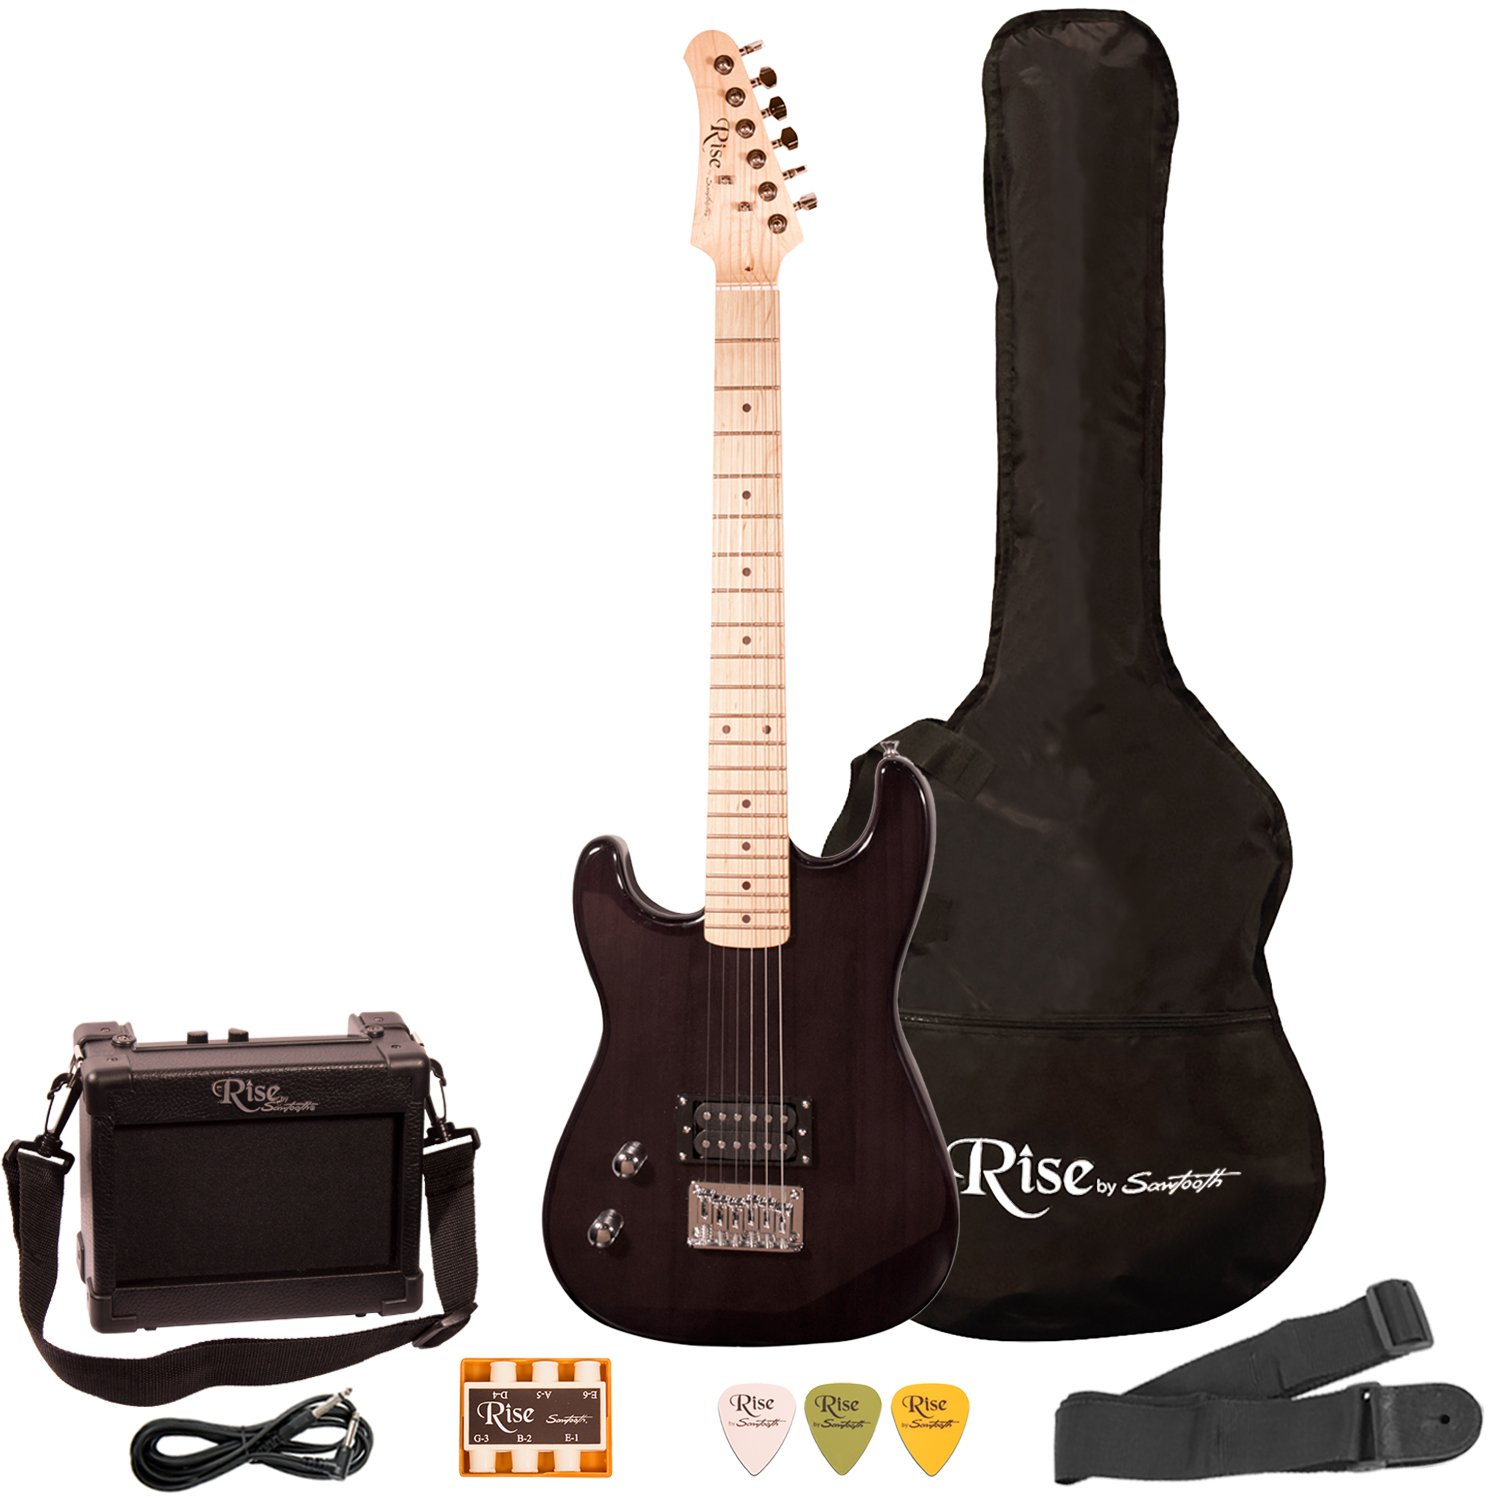 Rise by Sawtooth ST-RISE-ST-LH-SB-KIT-1 Electric Guitar Pack, Left Handed, Sunburst GO-DPS